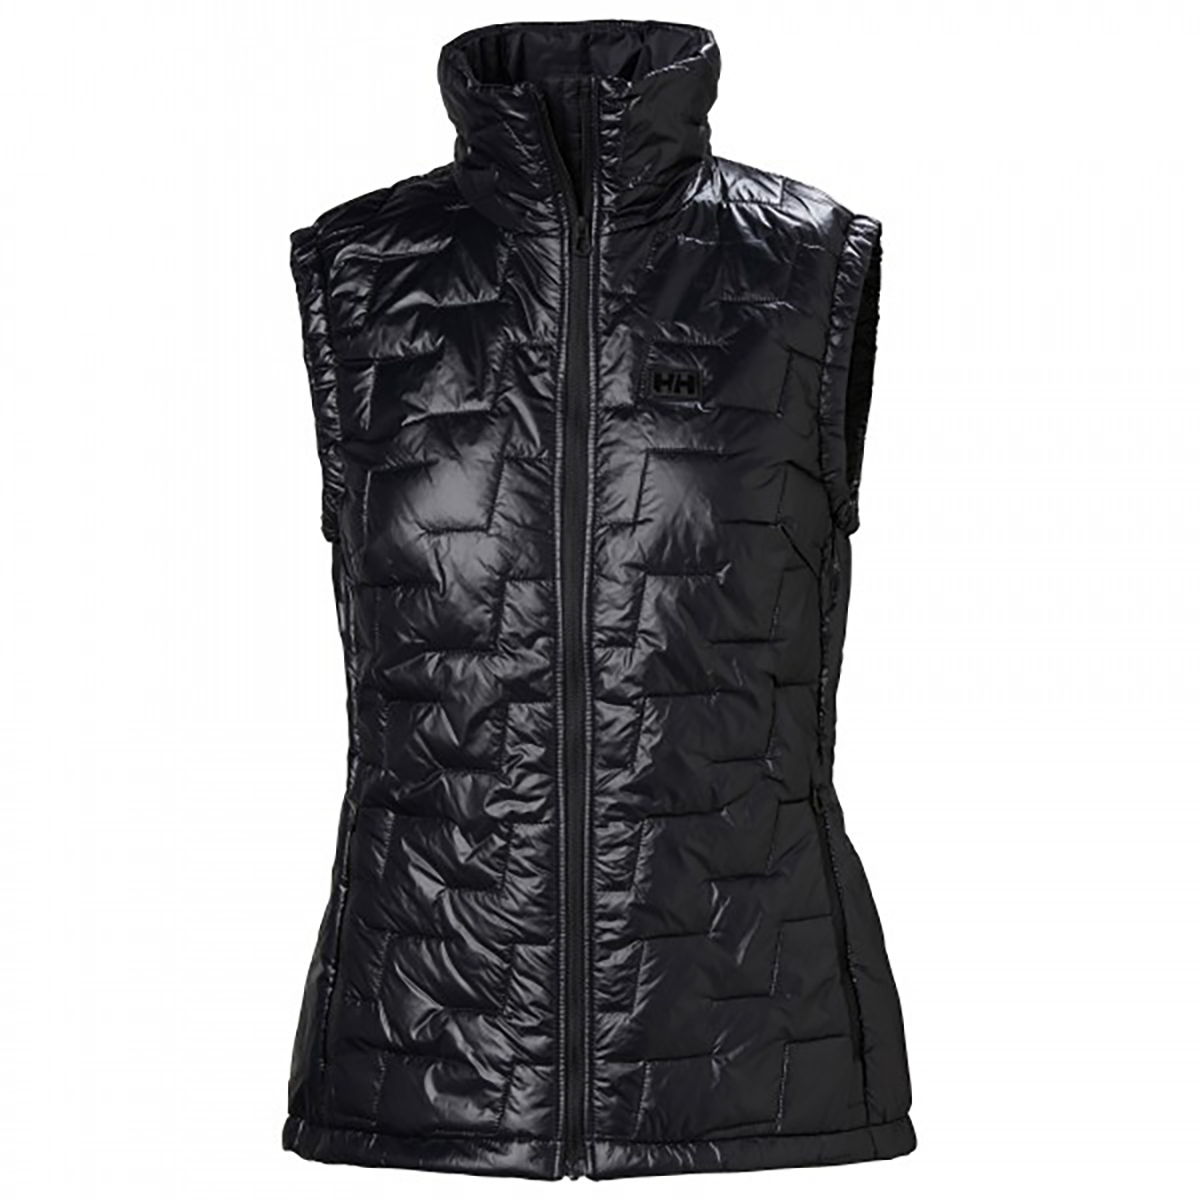 Helly Hansen Womens Lifaloft Insulator Vest | Vests